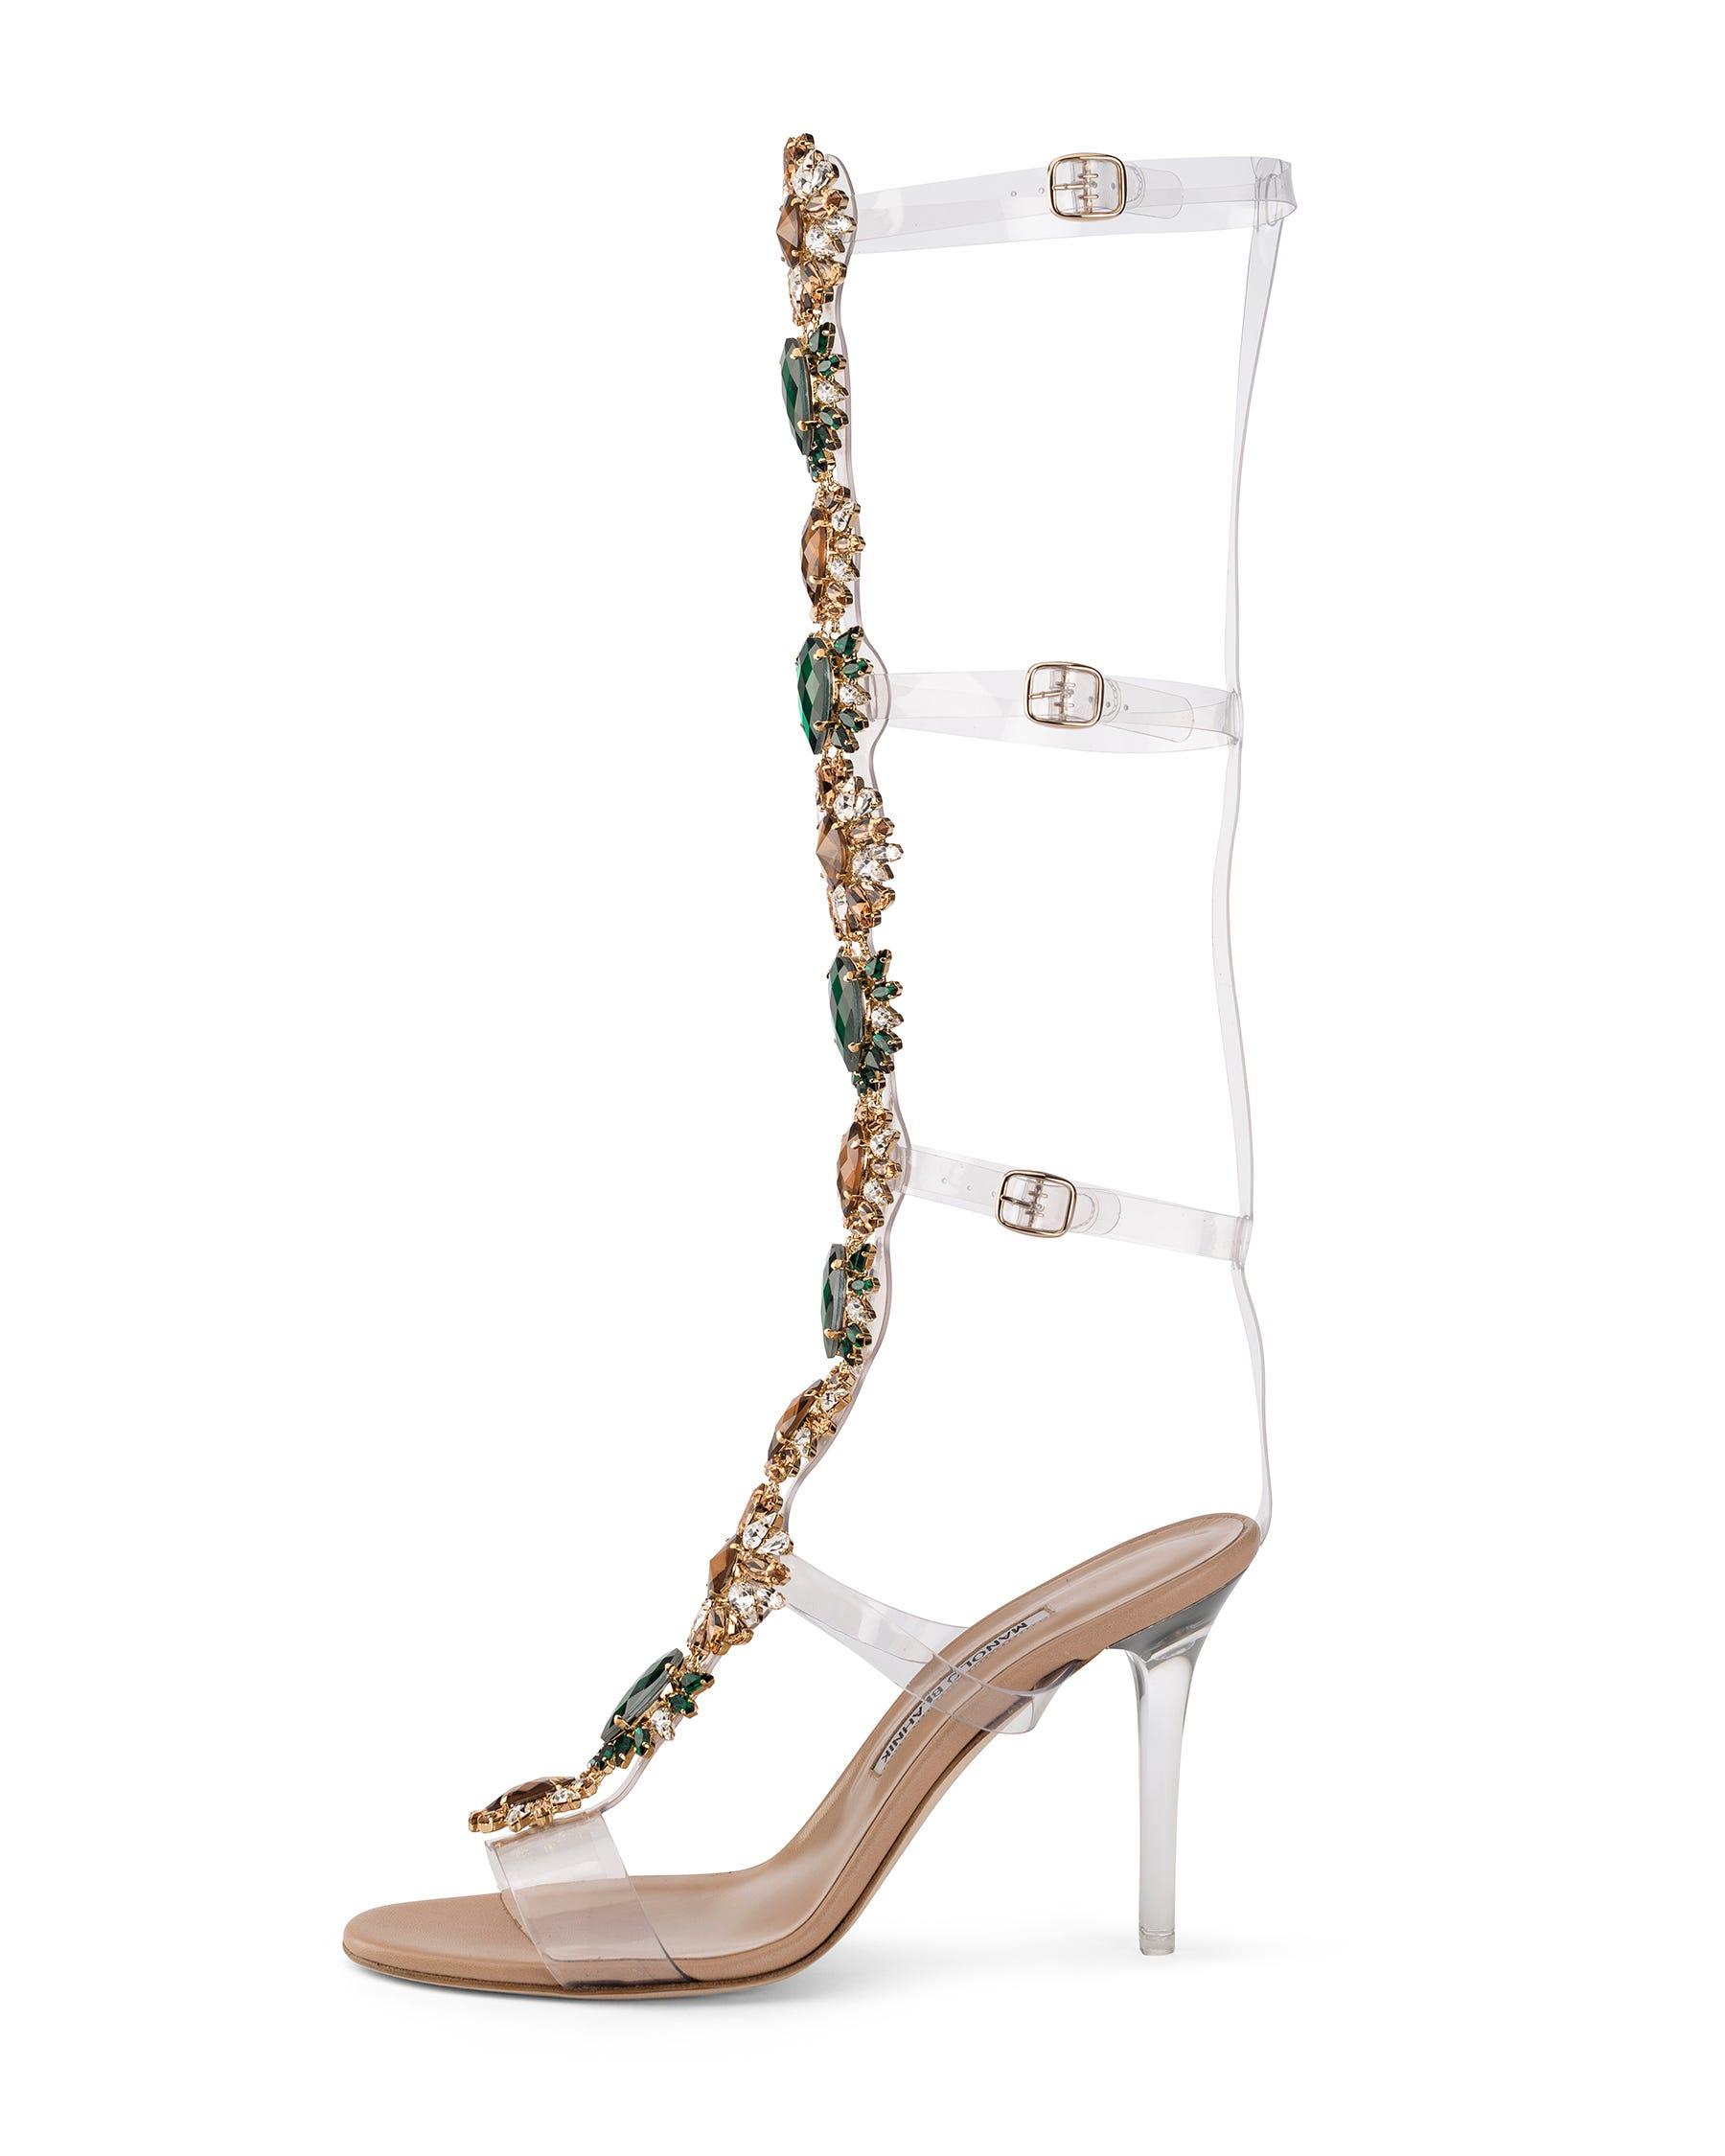 tom shoes size bosli strap us for runway gold club with house ankle formal ford of the heels sandals b brown collection design chocolate m regular alloy